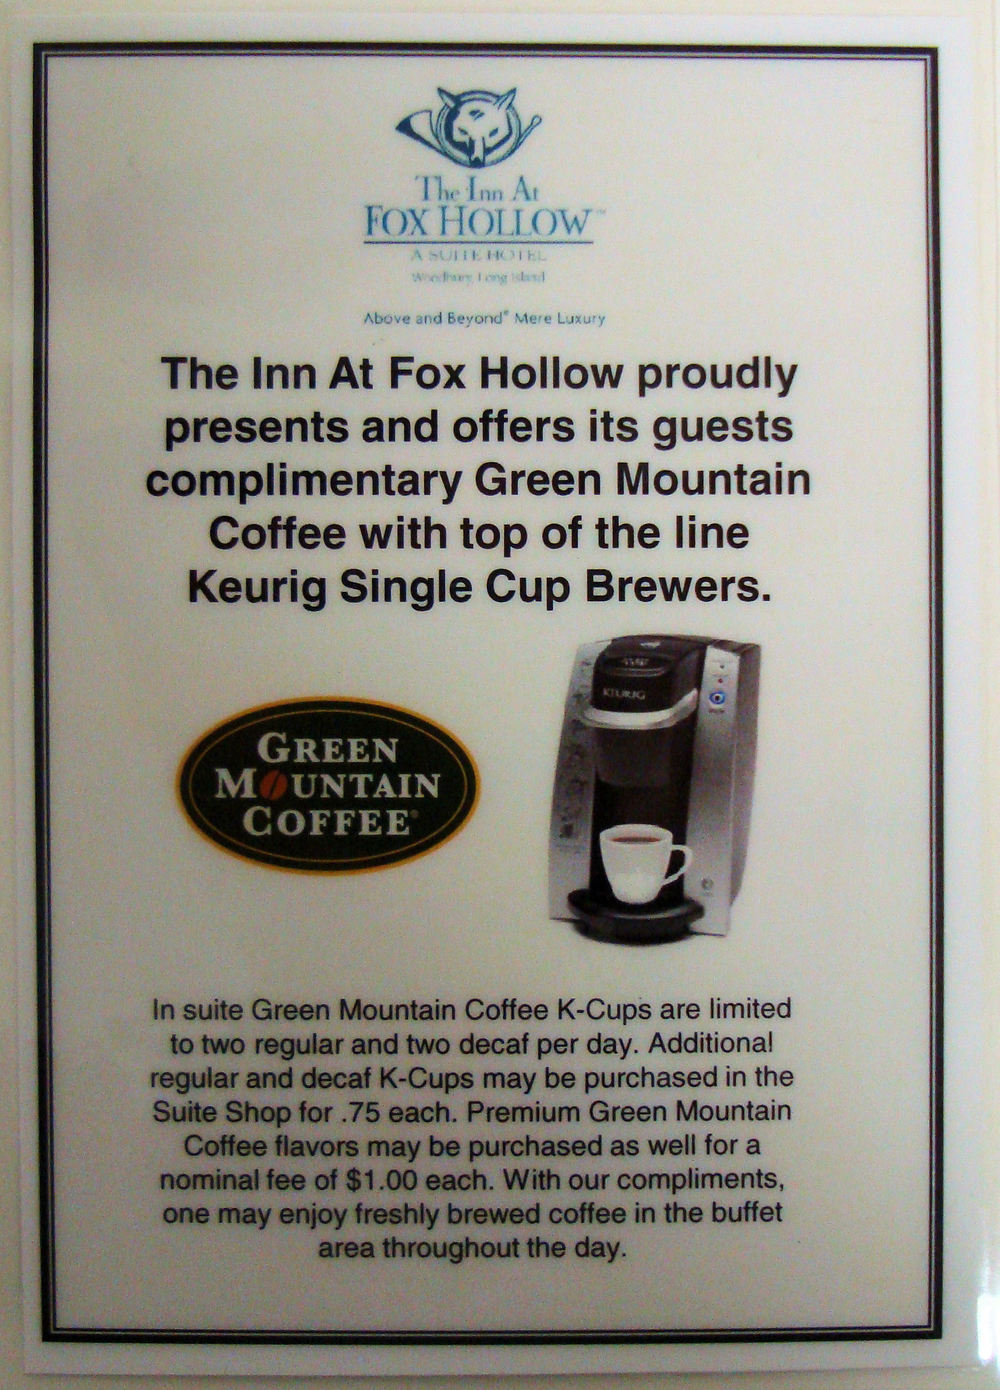 In Room Hotel K-Cup Coffee: Inn At Fox Hollow